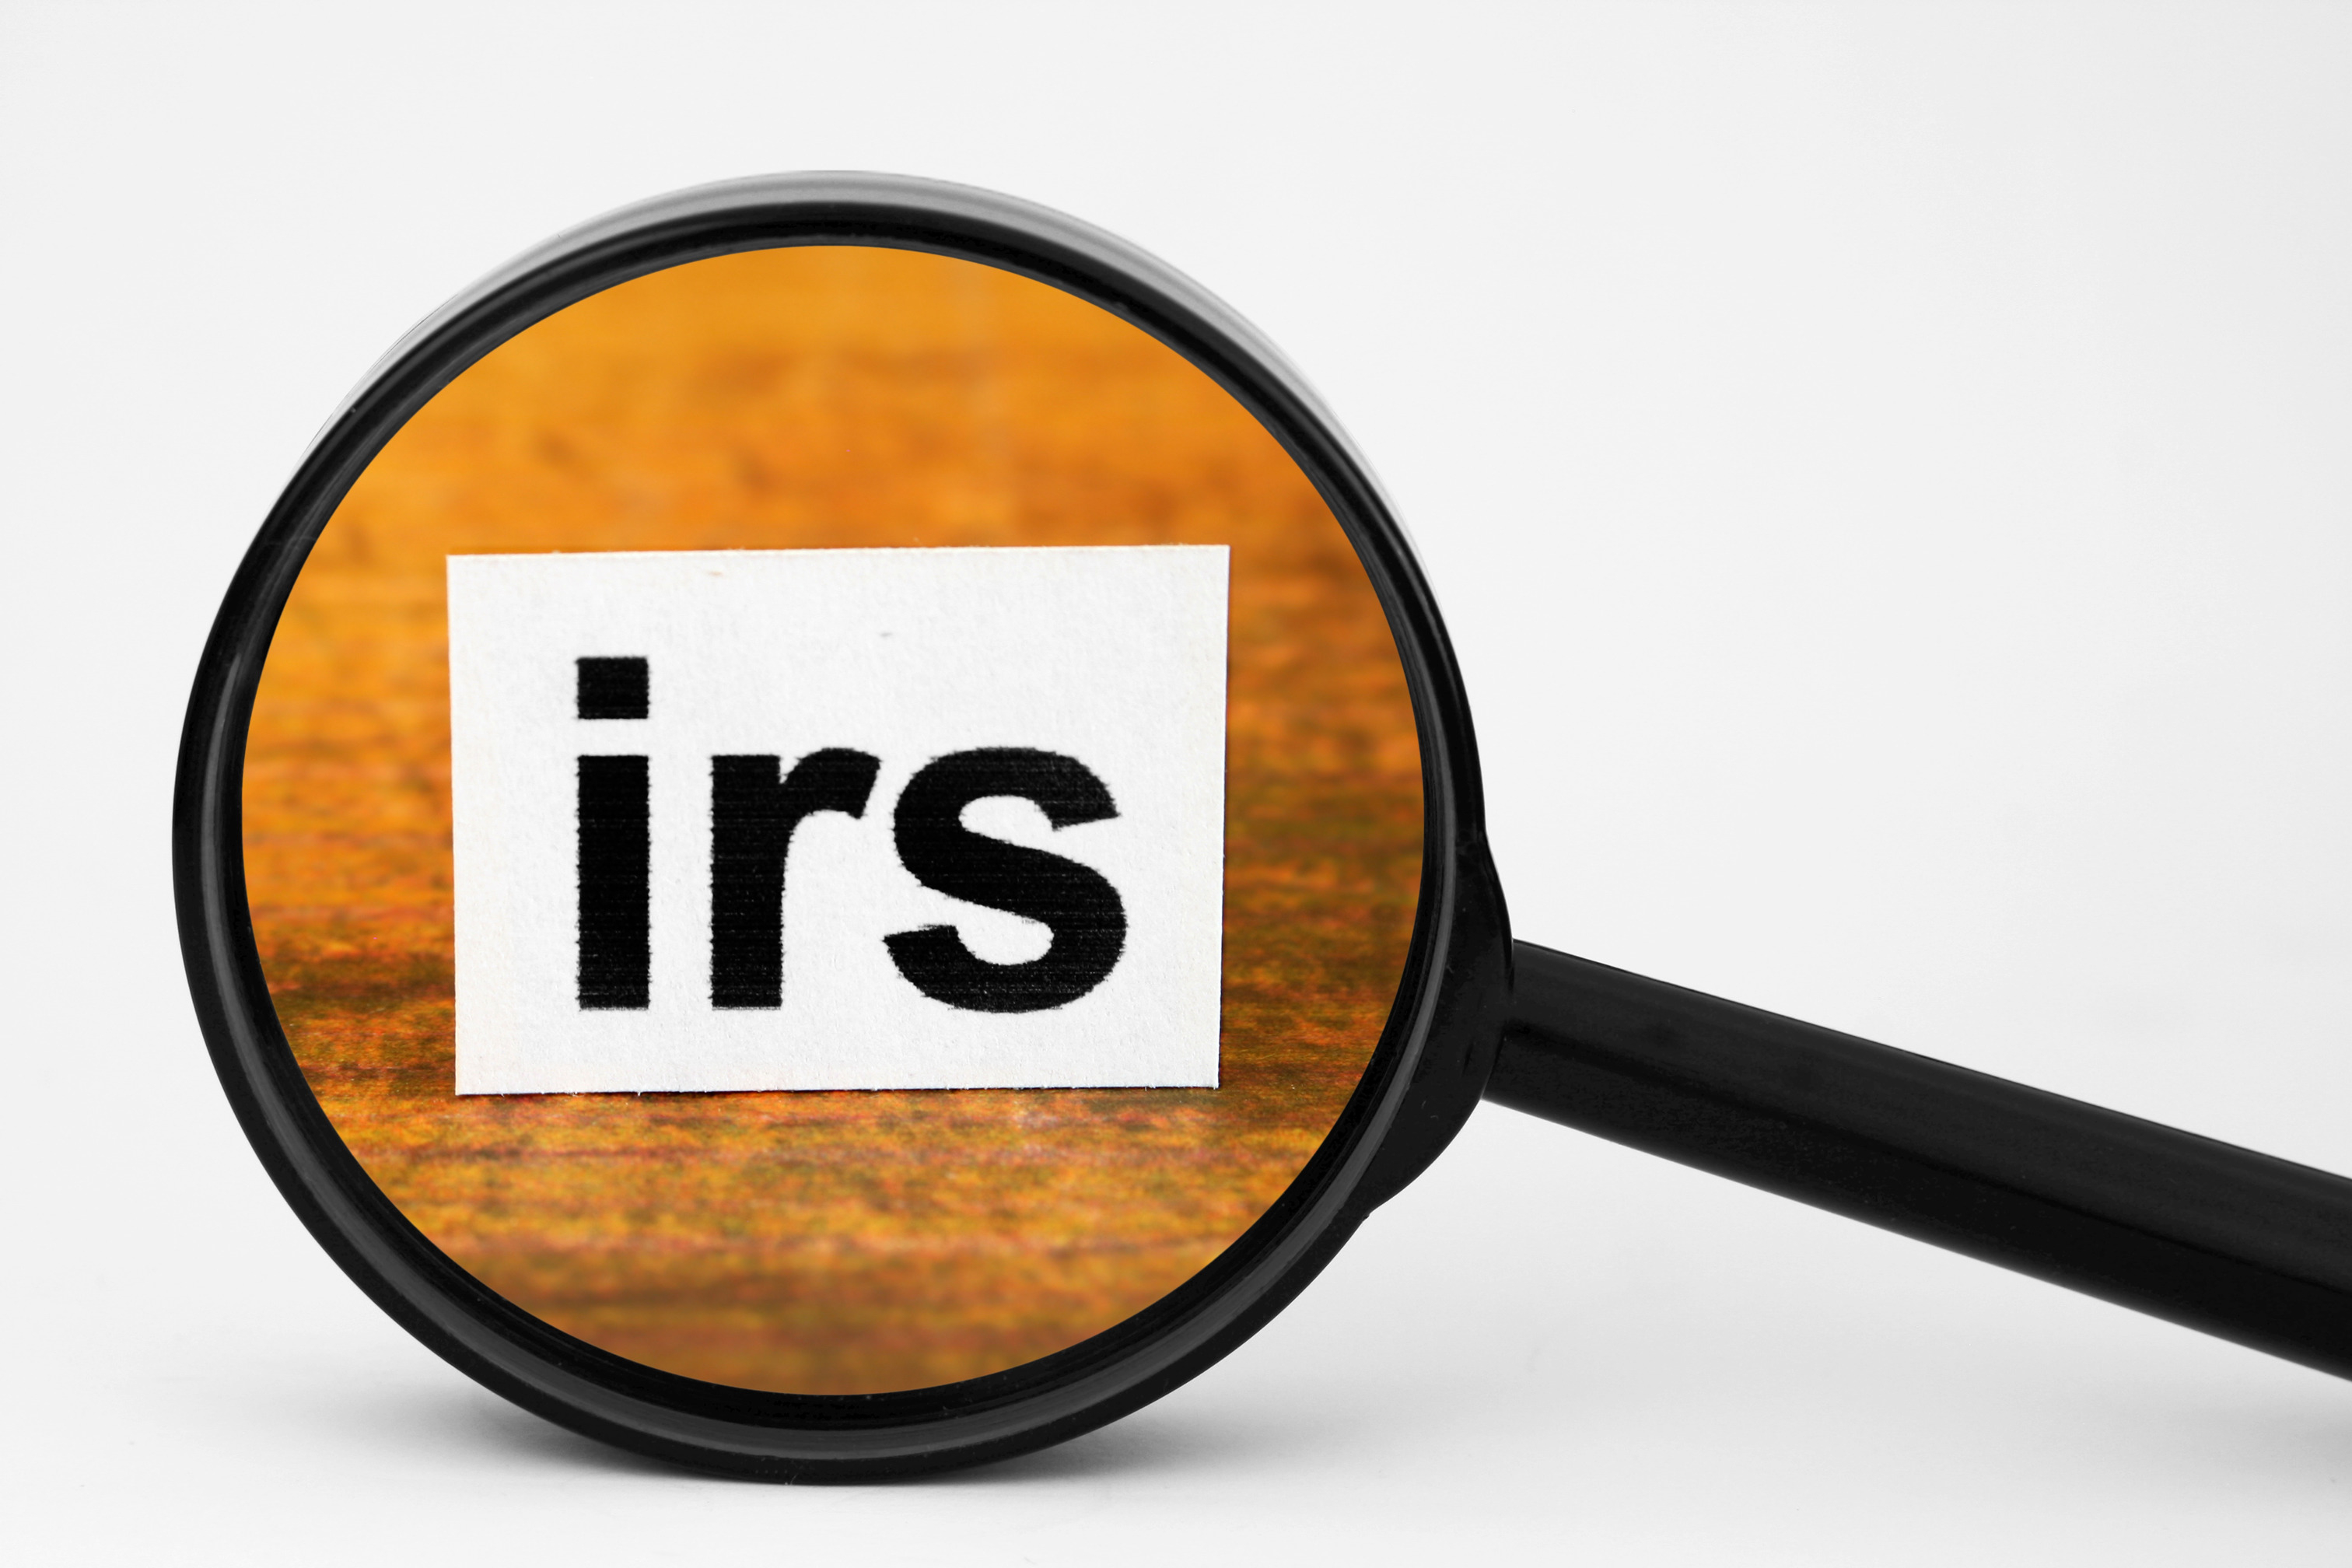 Don't Assume It's Correct, Just Because It's the IRS